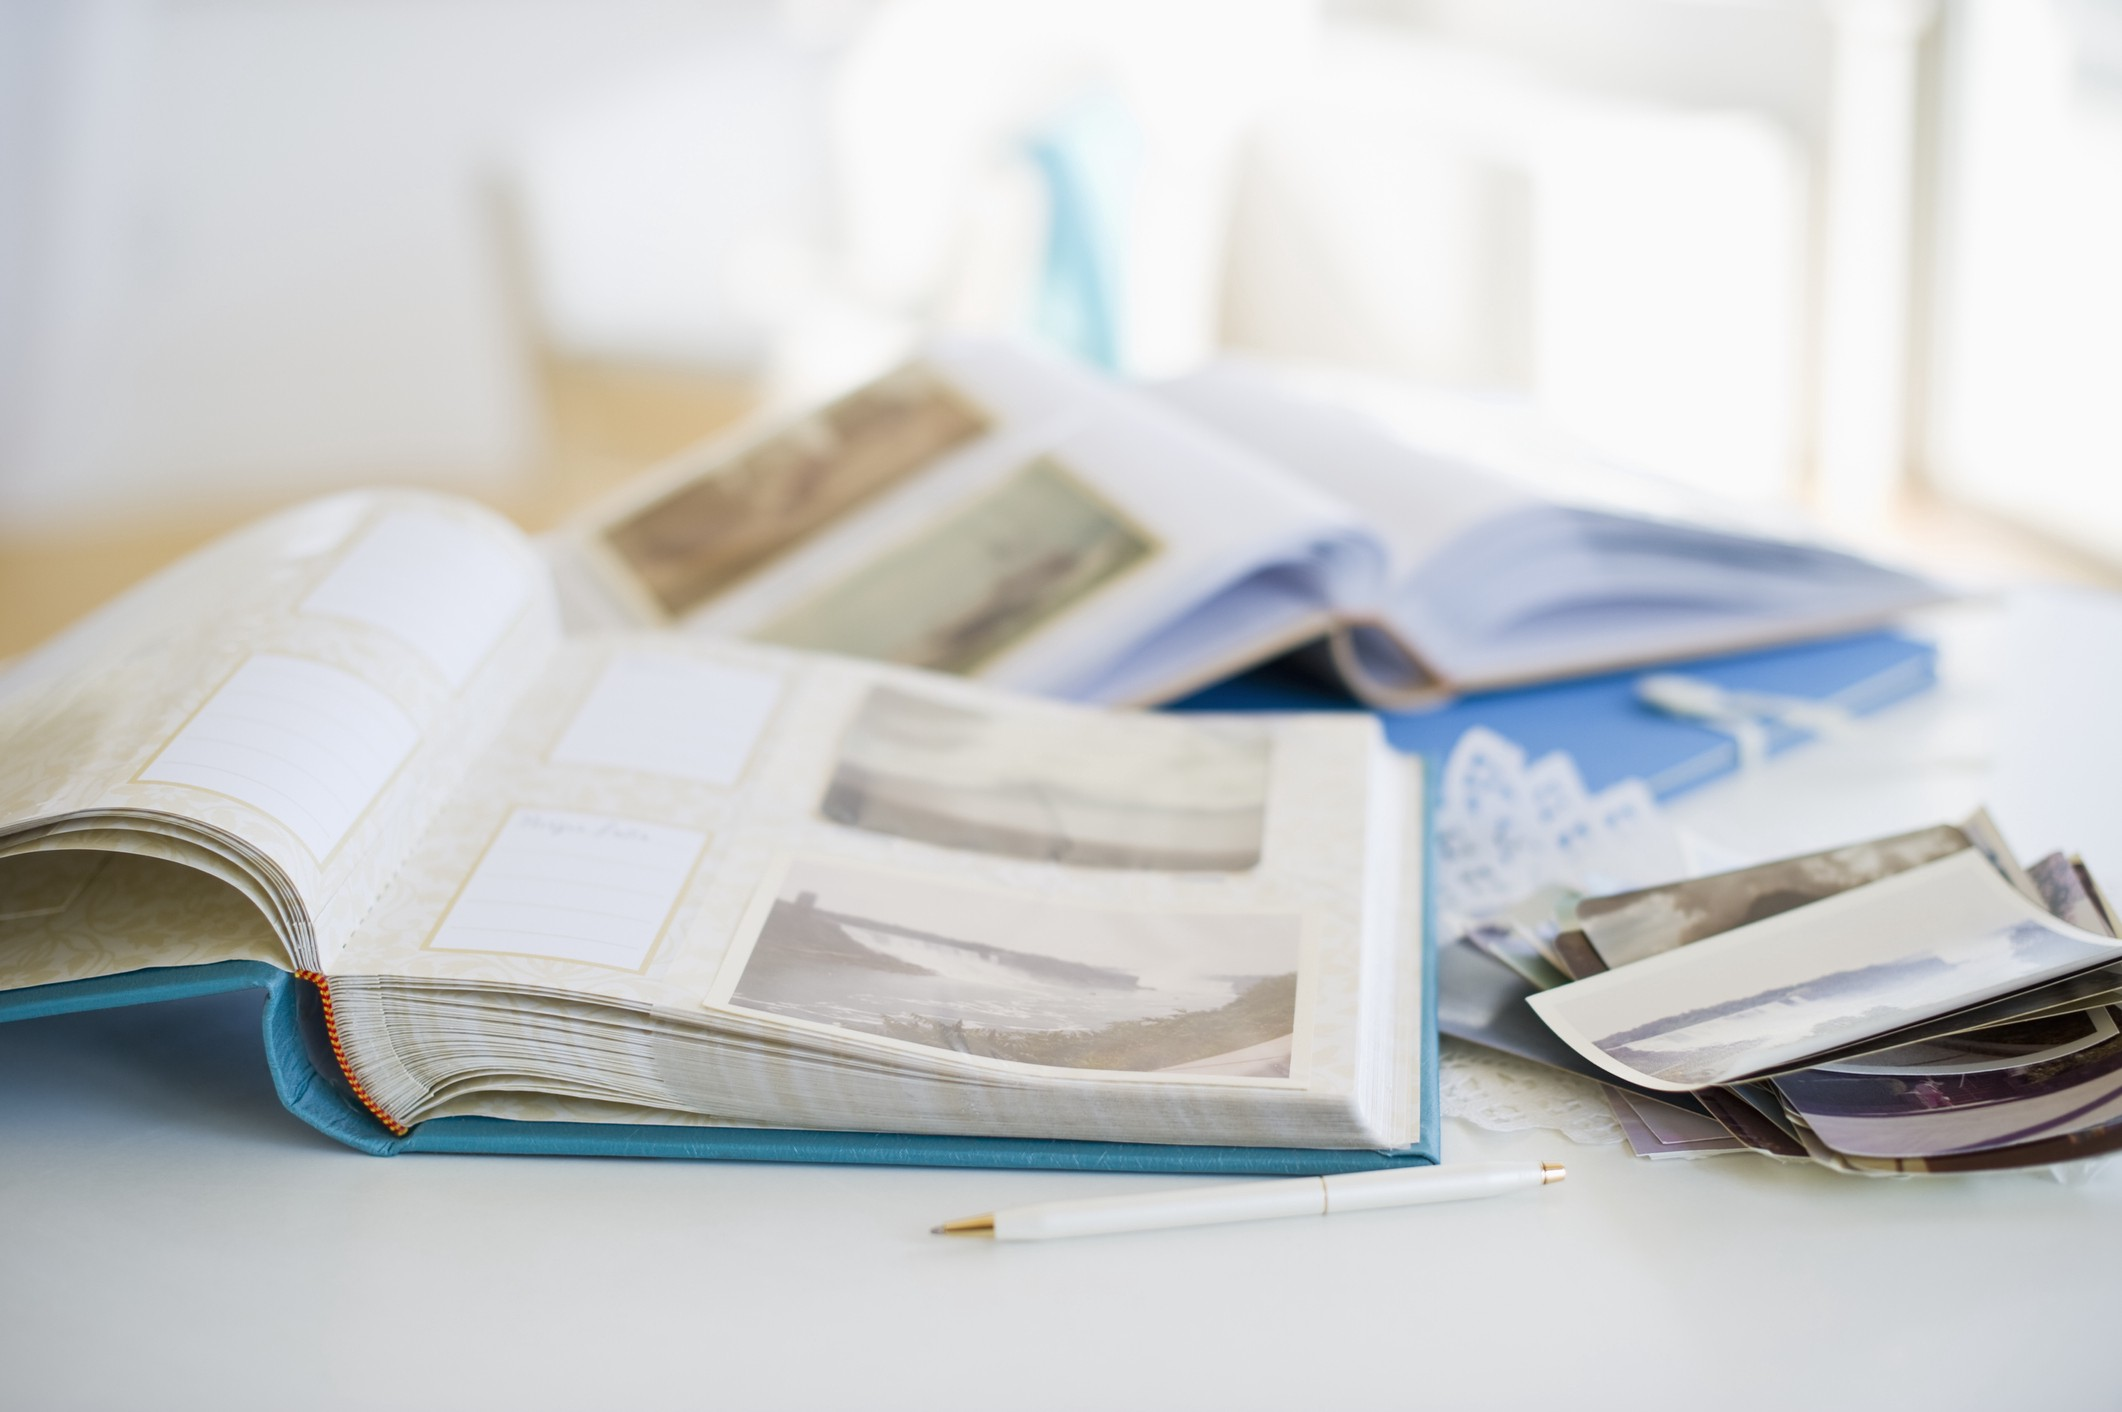 A photo of two photo scrapbooks on a table with some polaroids on the side.